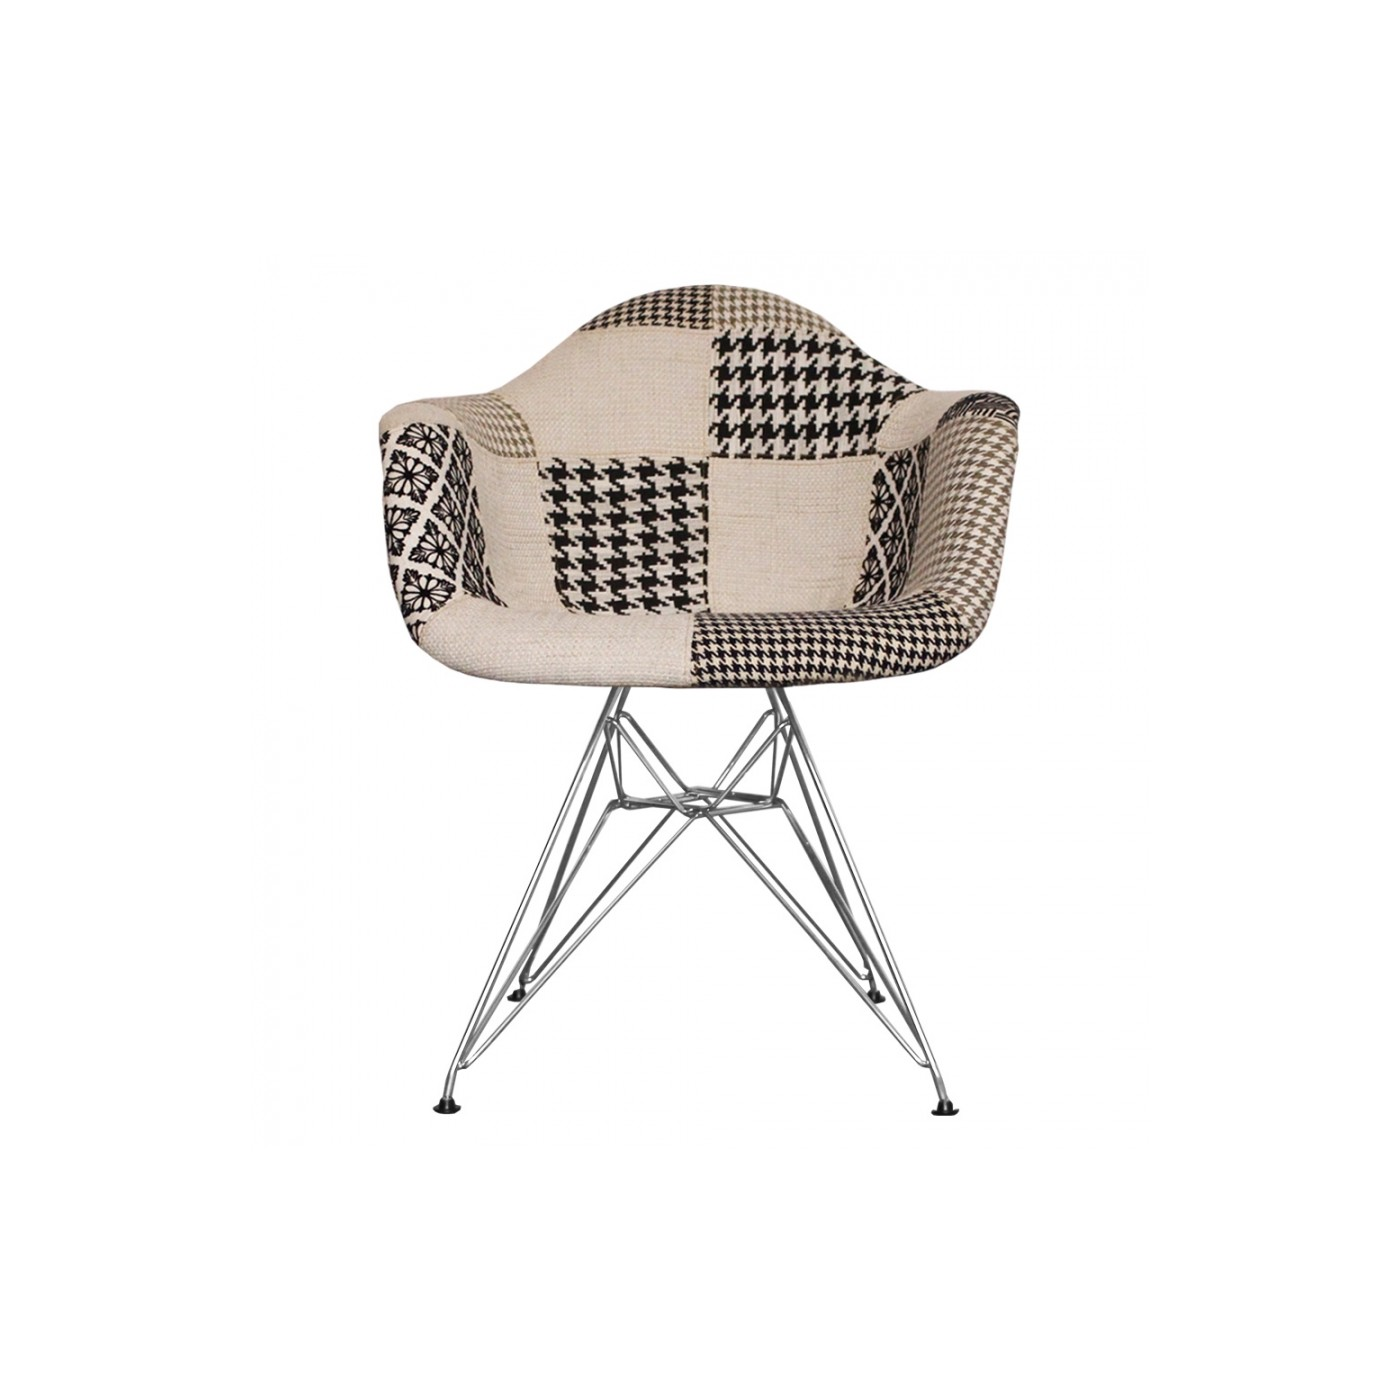 Eames Chair Dar Dar Arm Chair Patchwork Chair Charles Ray Eames Inspired